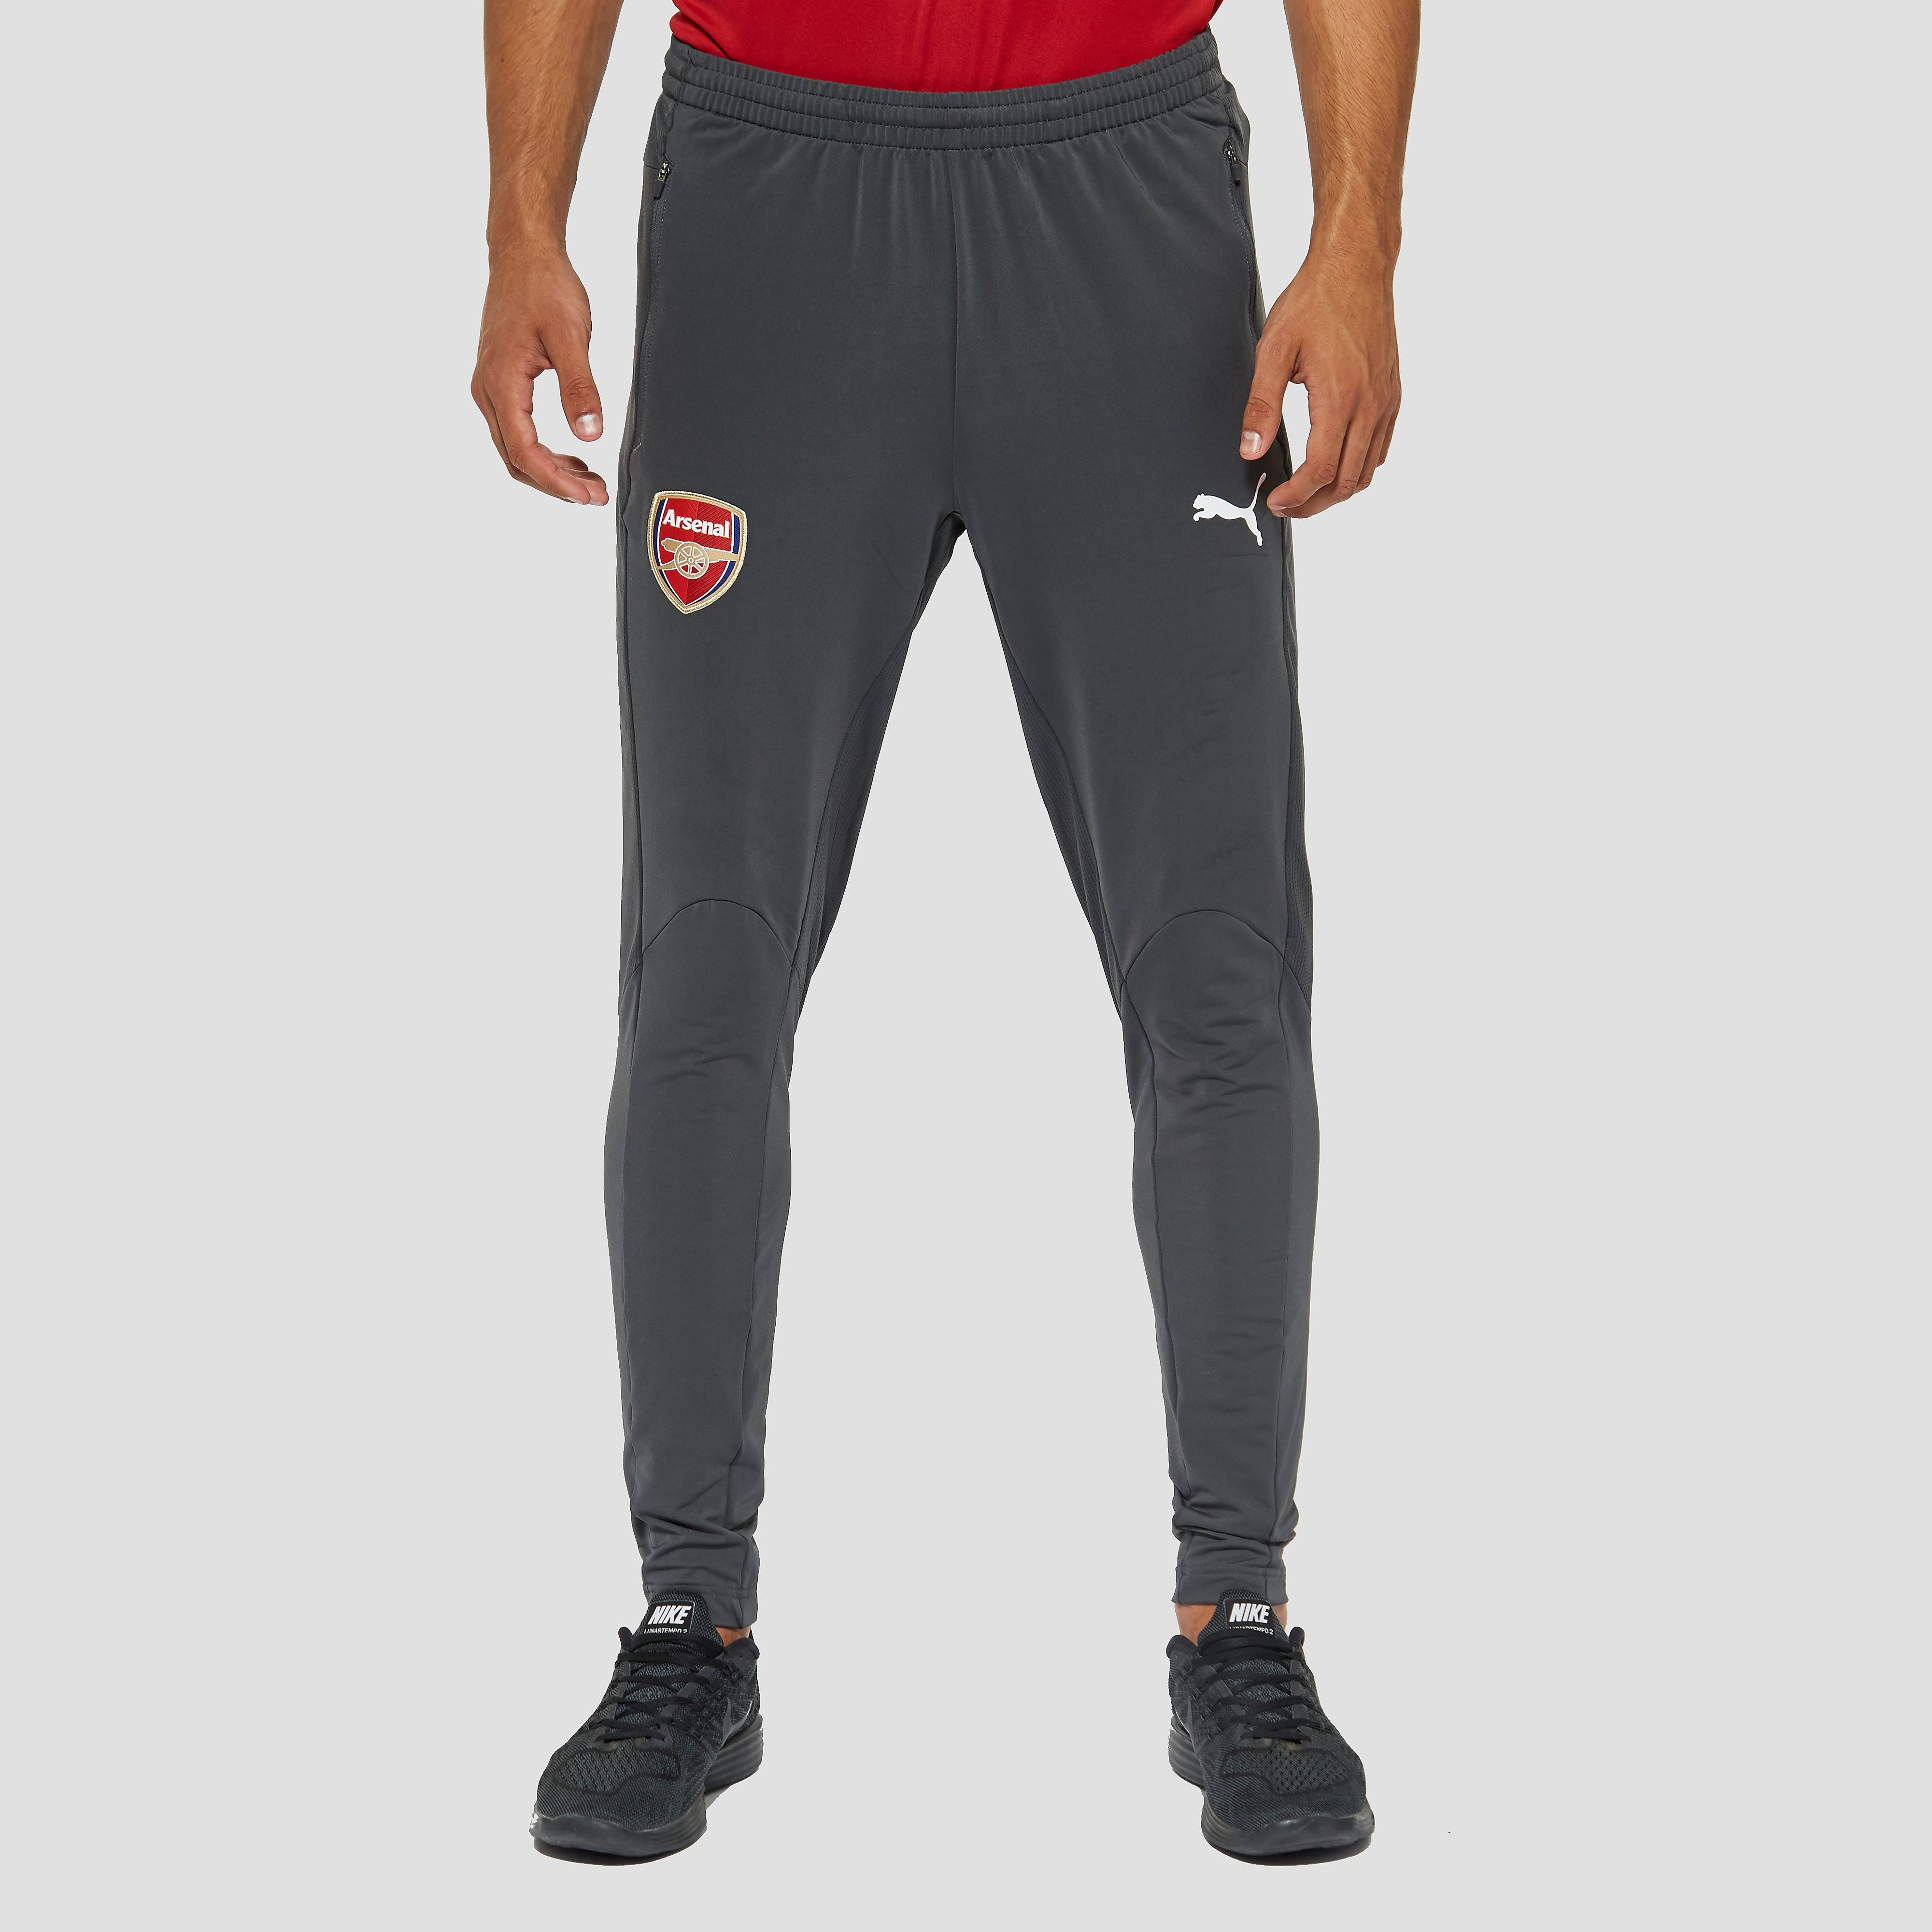 PUMA ARSENAL FC TRAININGSBROEK 17/18 GROEN HEREN